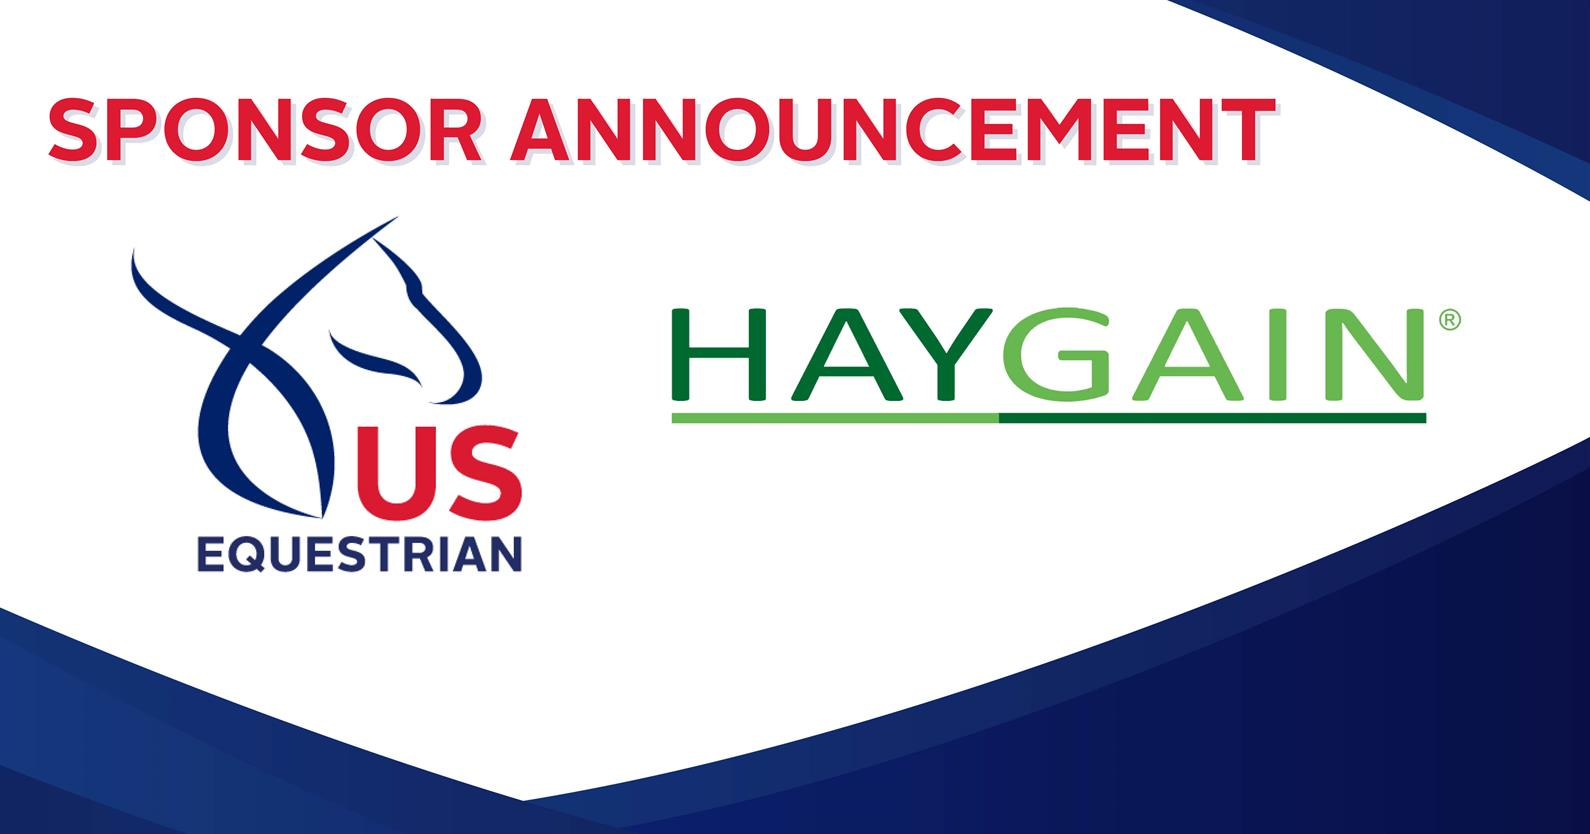 US Equestrian and Haygain Launch New Partnership